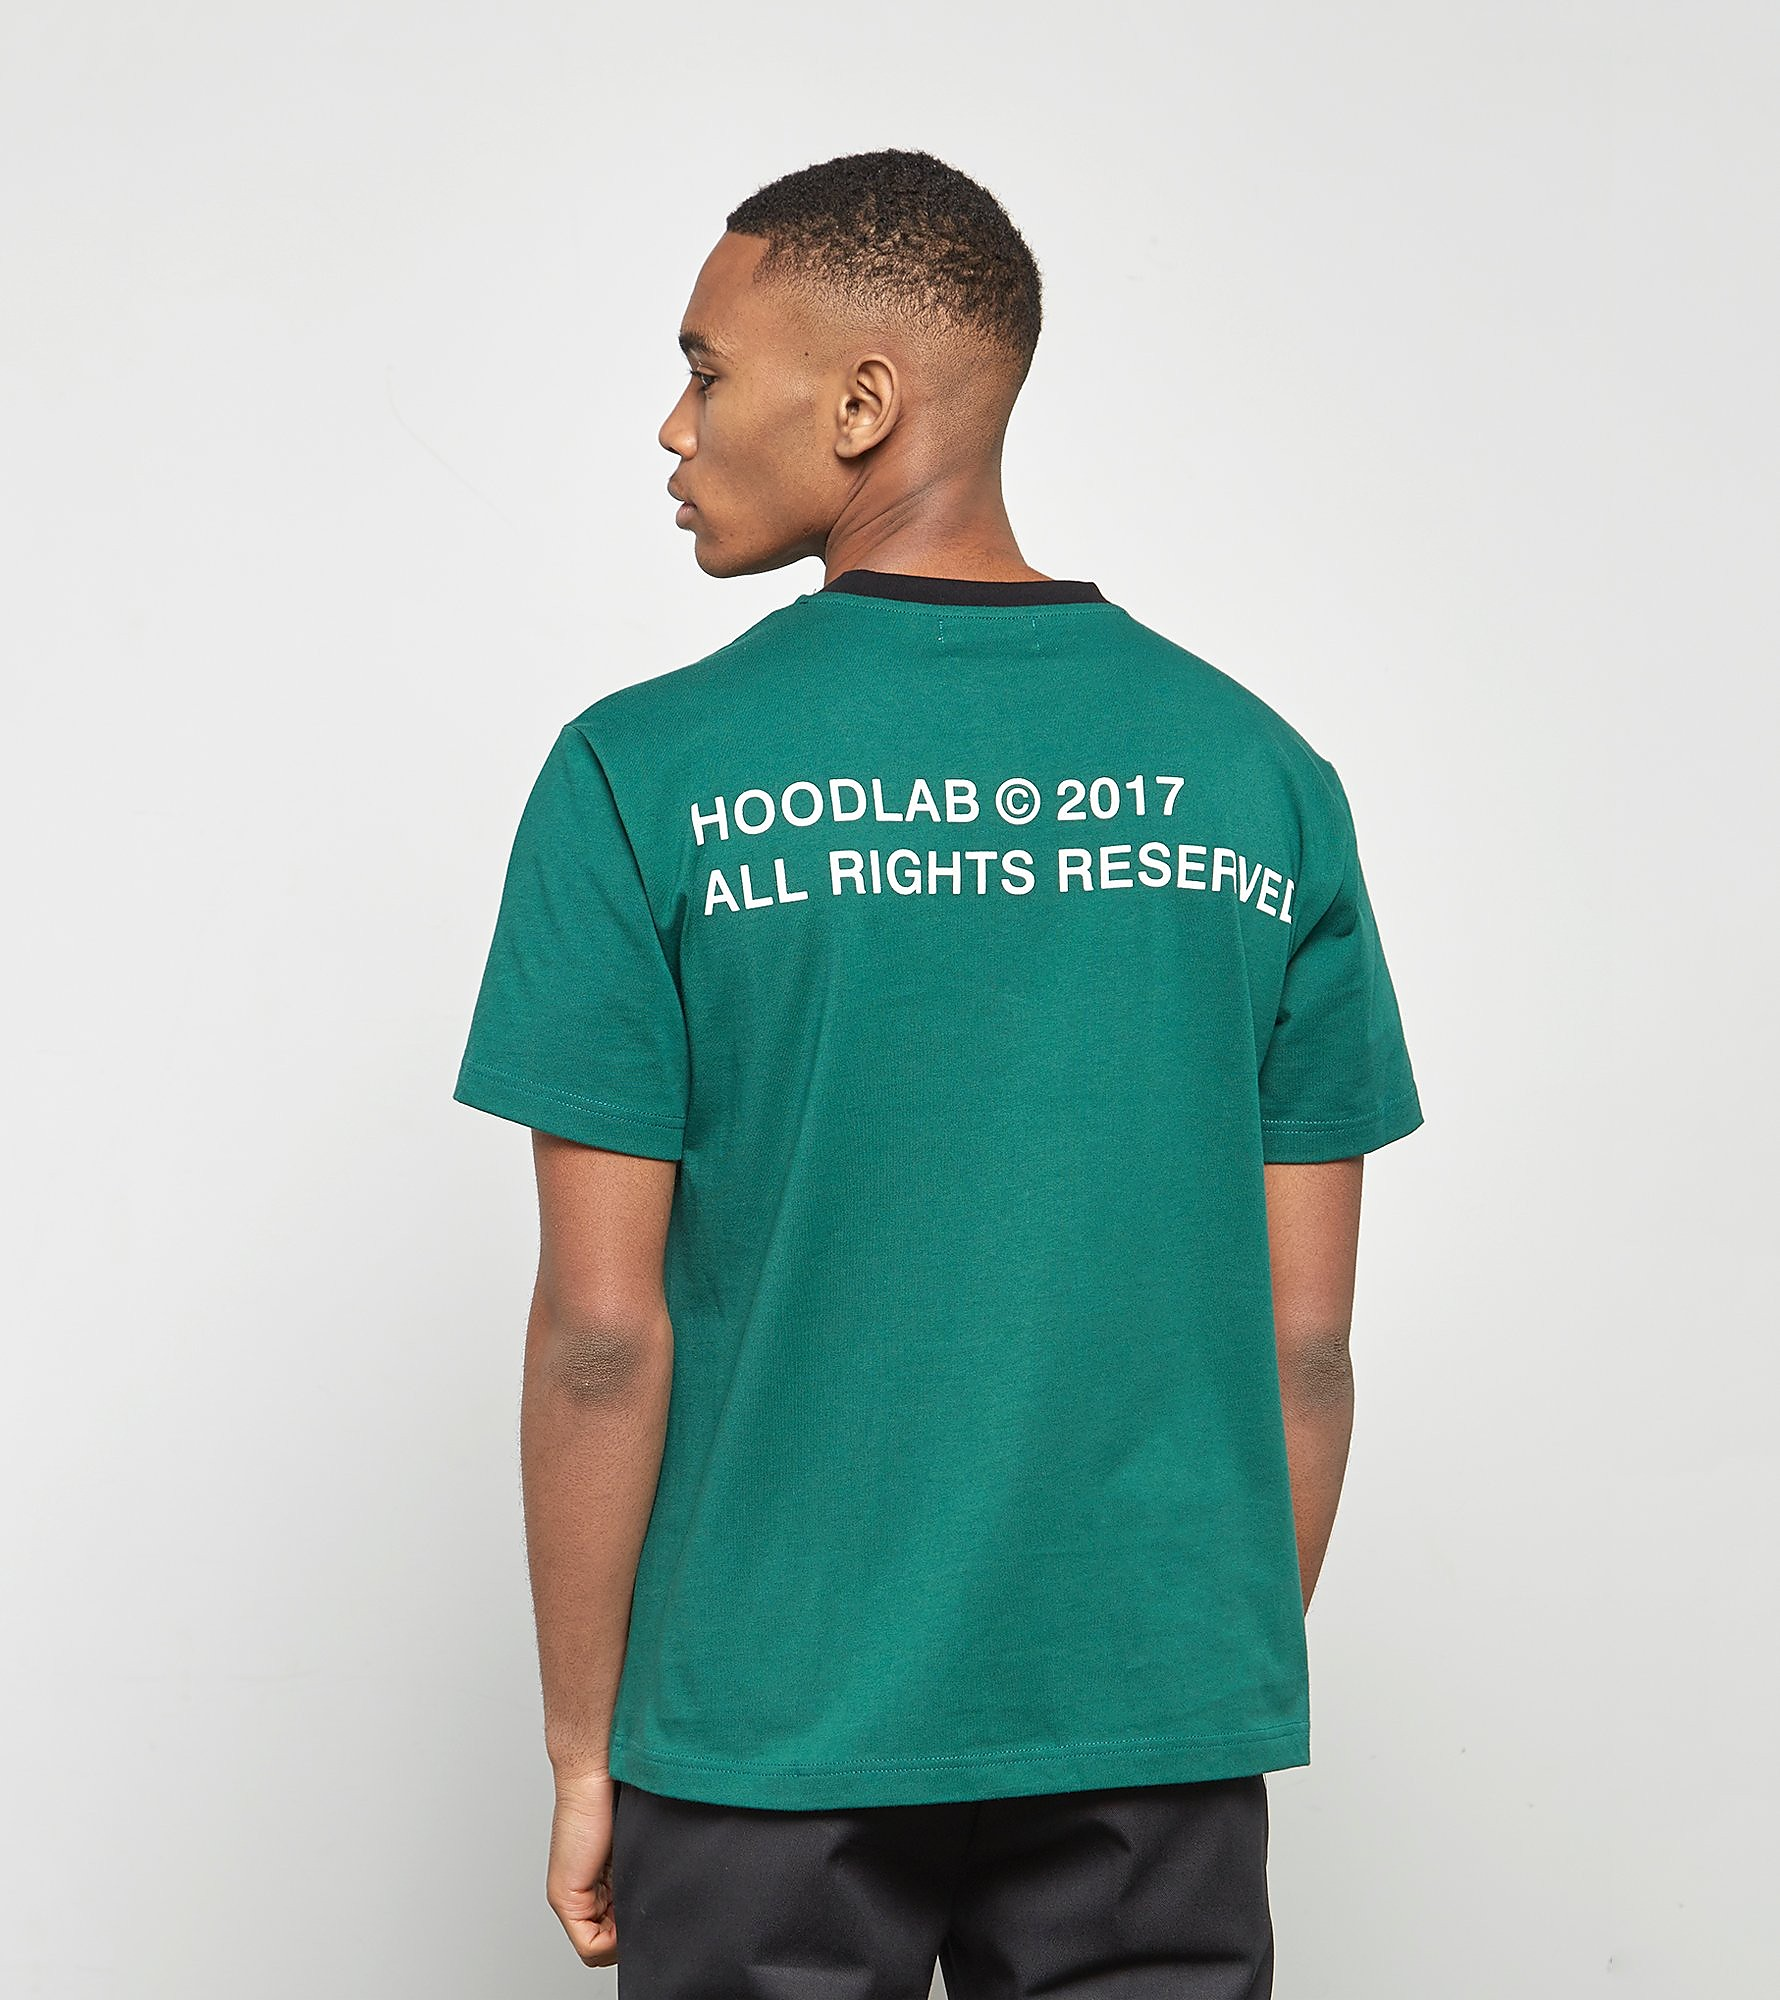 Hoodlab All Right T-Shirt - size? Exclusive